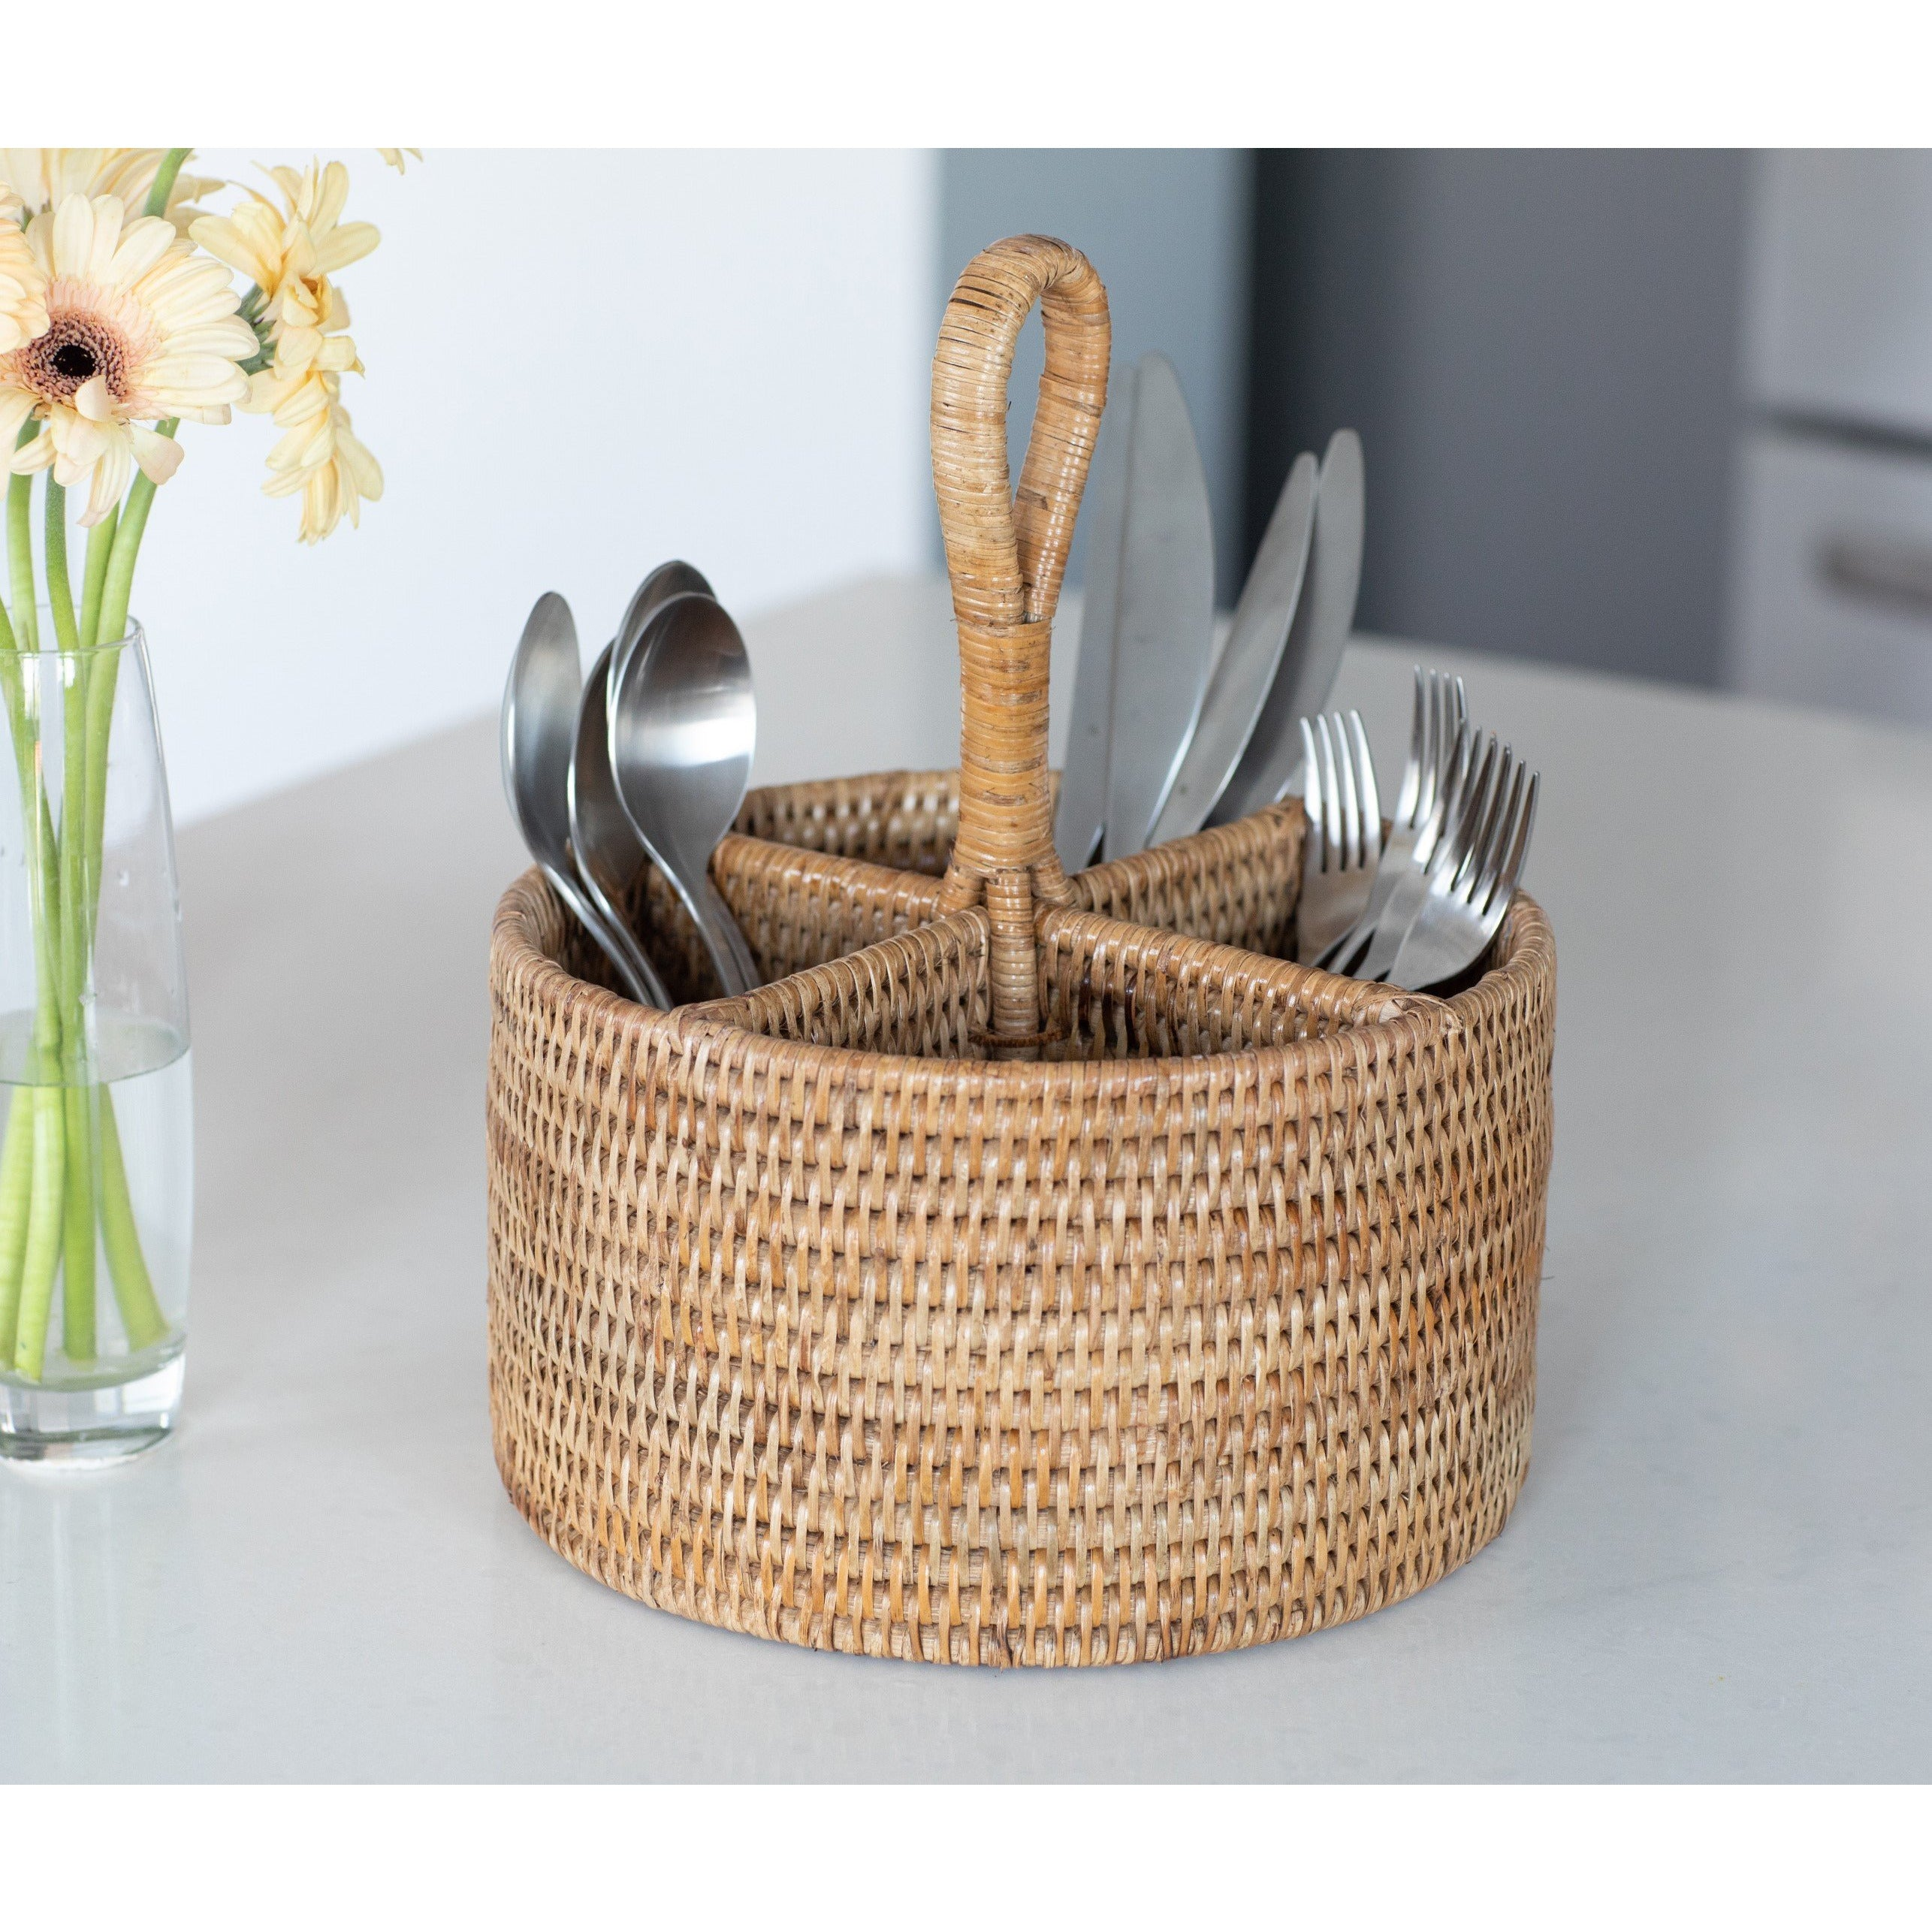 4 section Caddy/Cutlery Holder